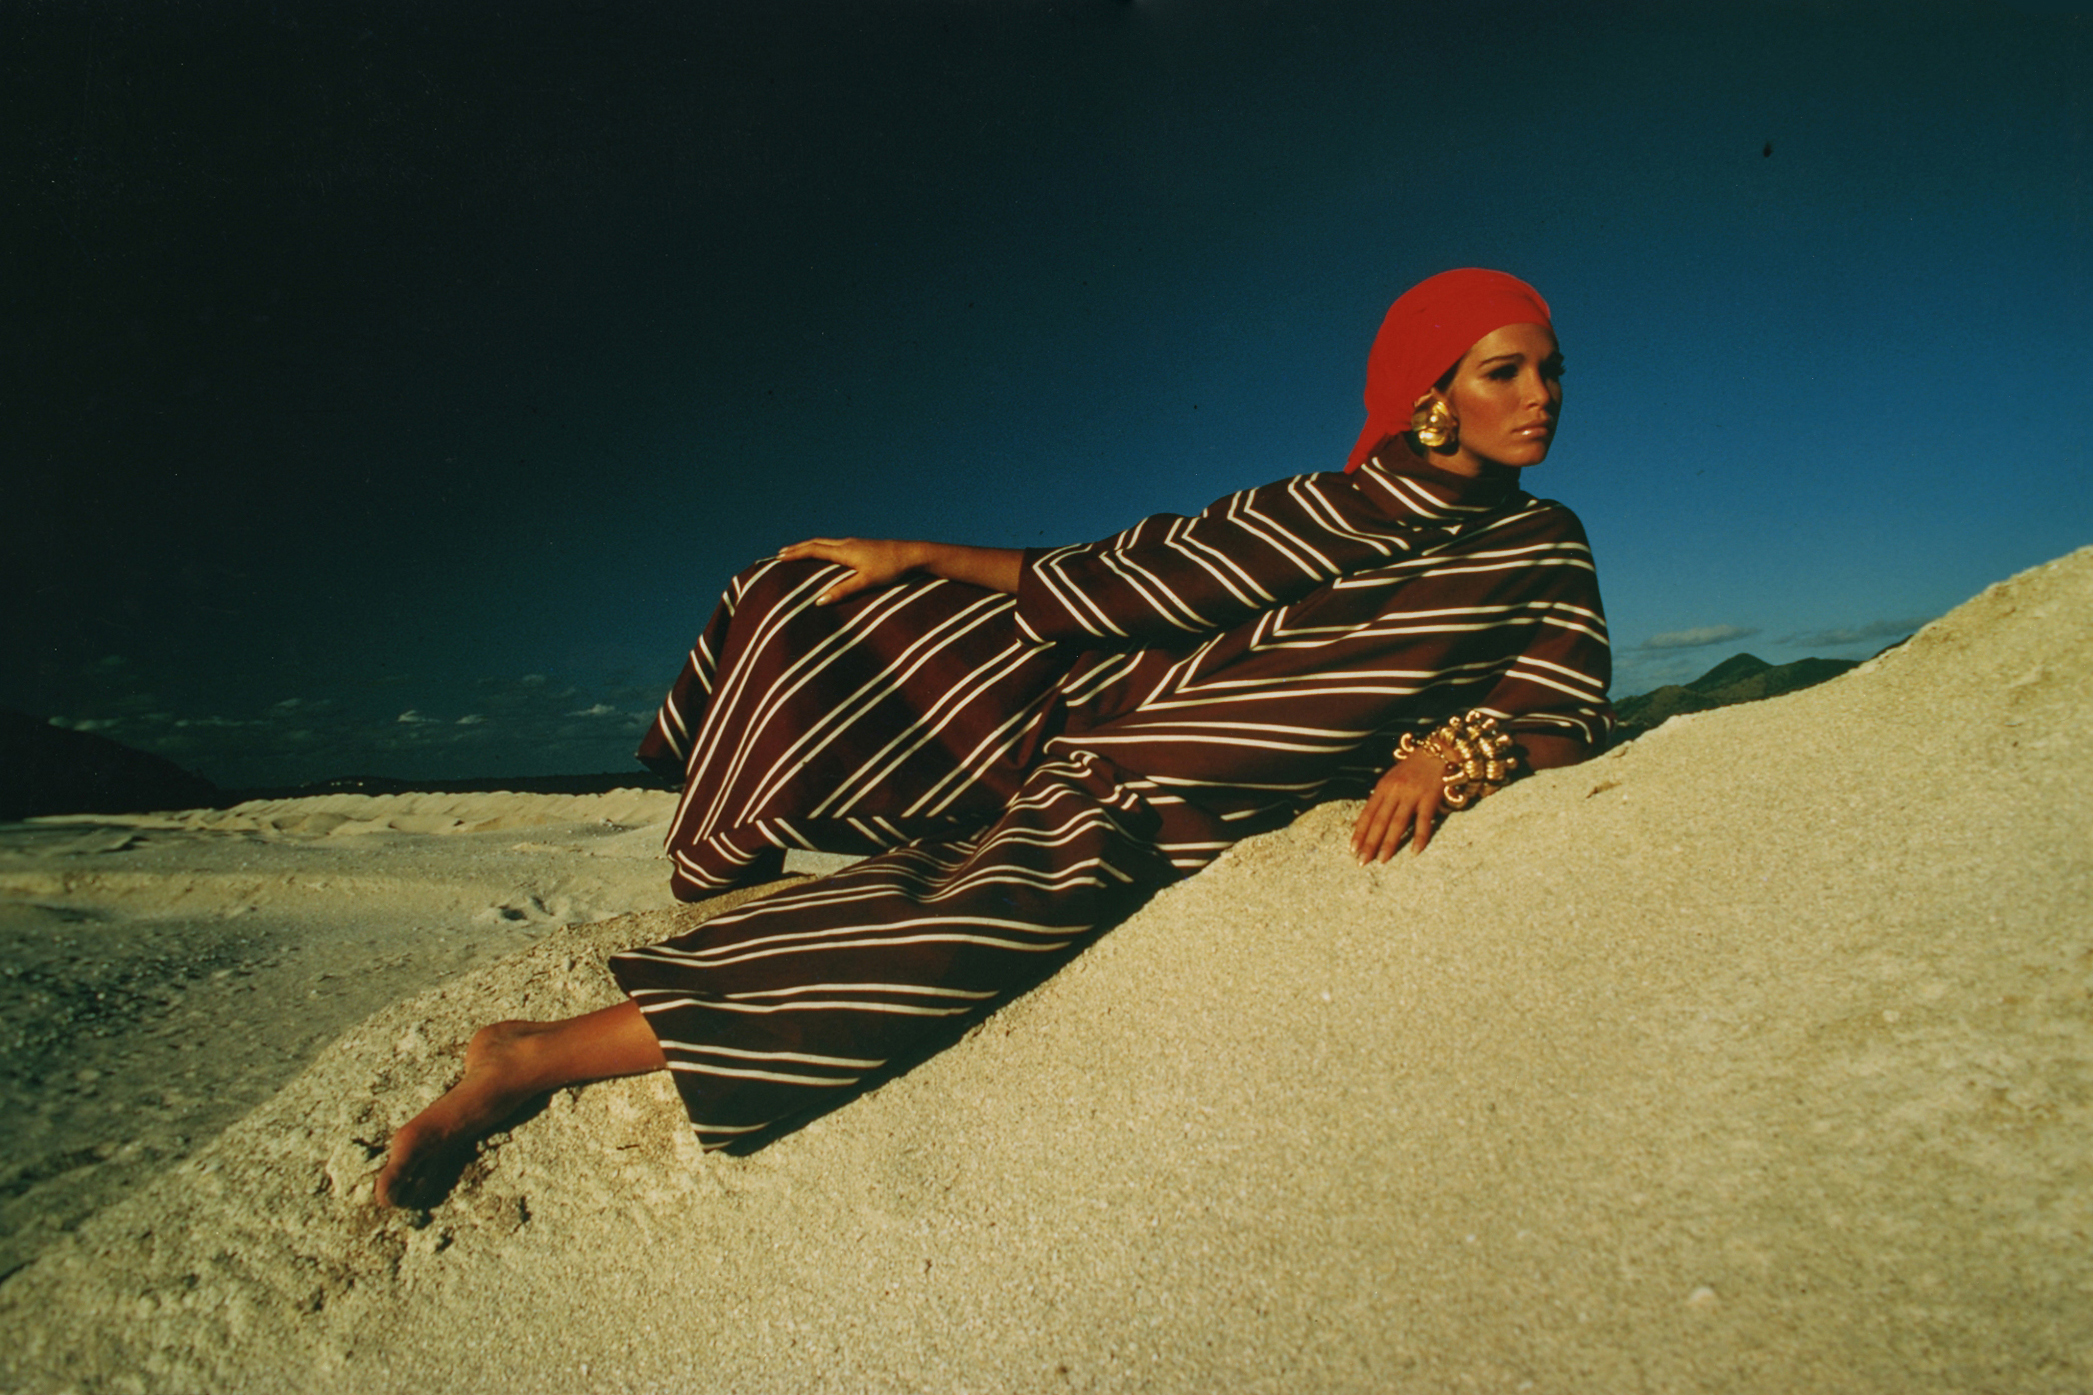 Harper's Bazaar, May 1968 issue | Photograph by William Silano